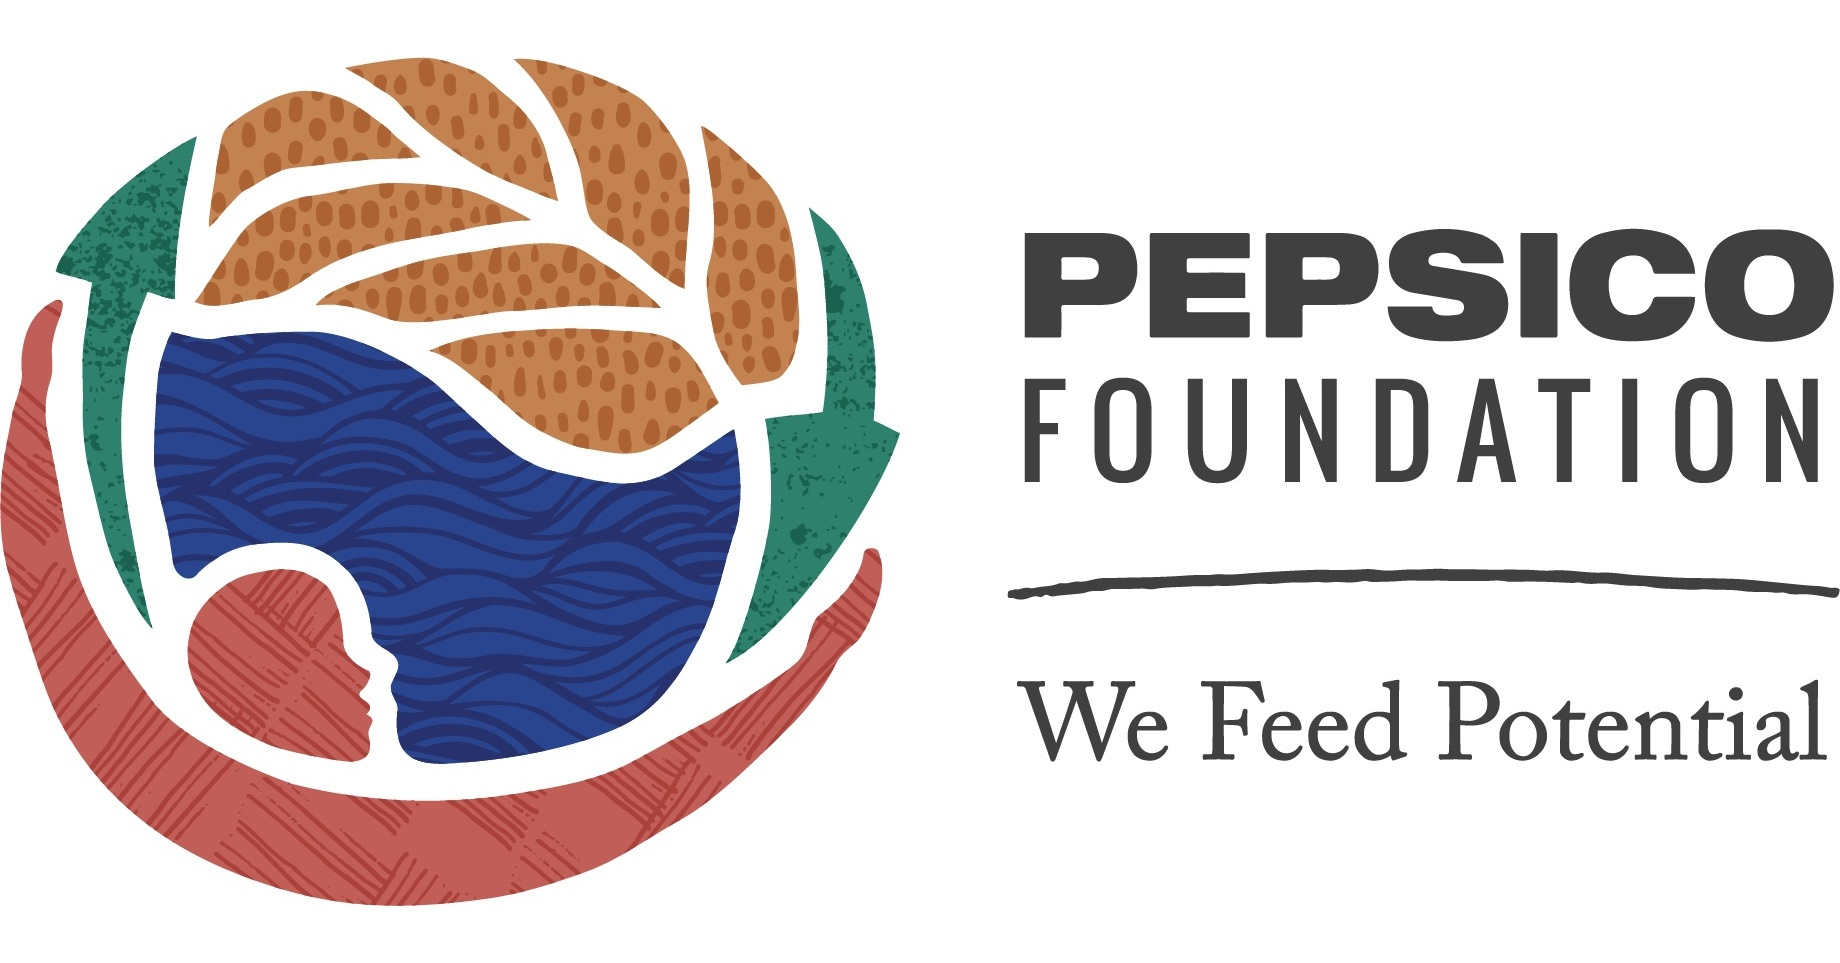 The Recycling Partnership and the PepsiCo Foundation Launch Largest-Ever Industry Challenge to Boost Residential Recycling for 25 Million U.S. Families and Support a Circular Economy